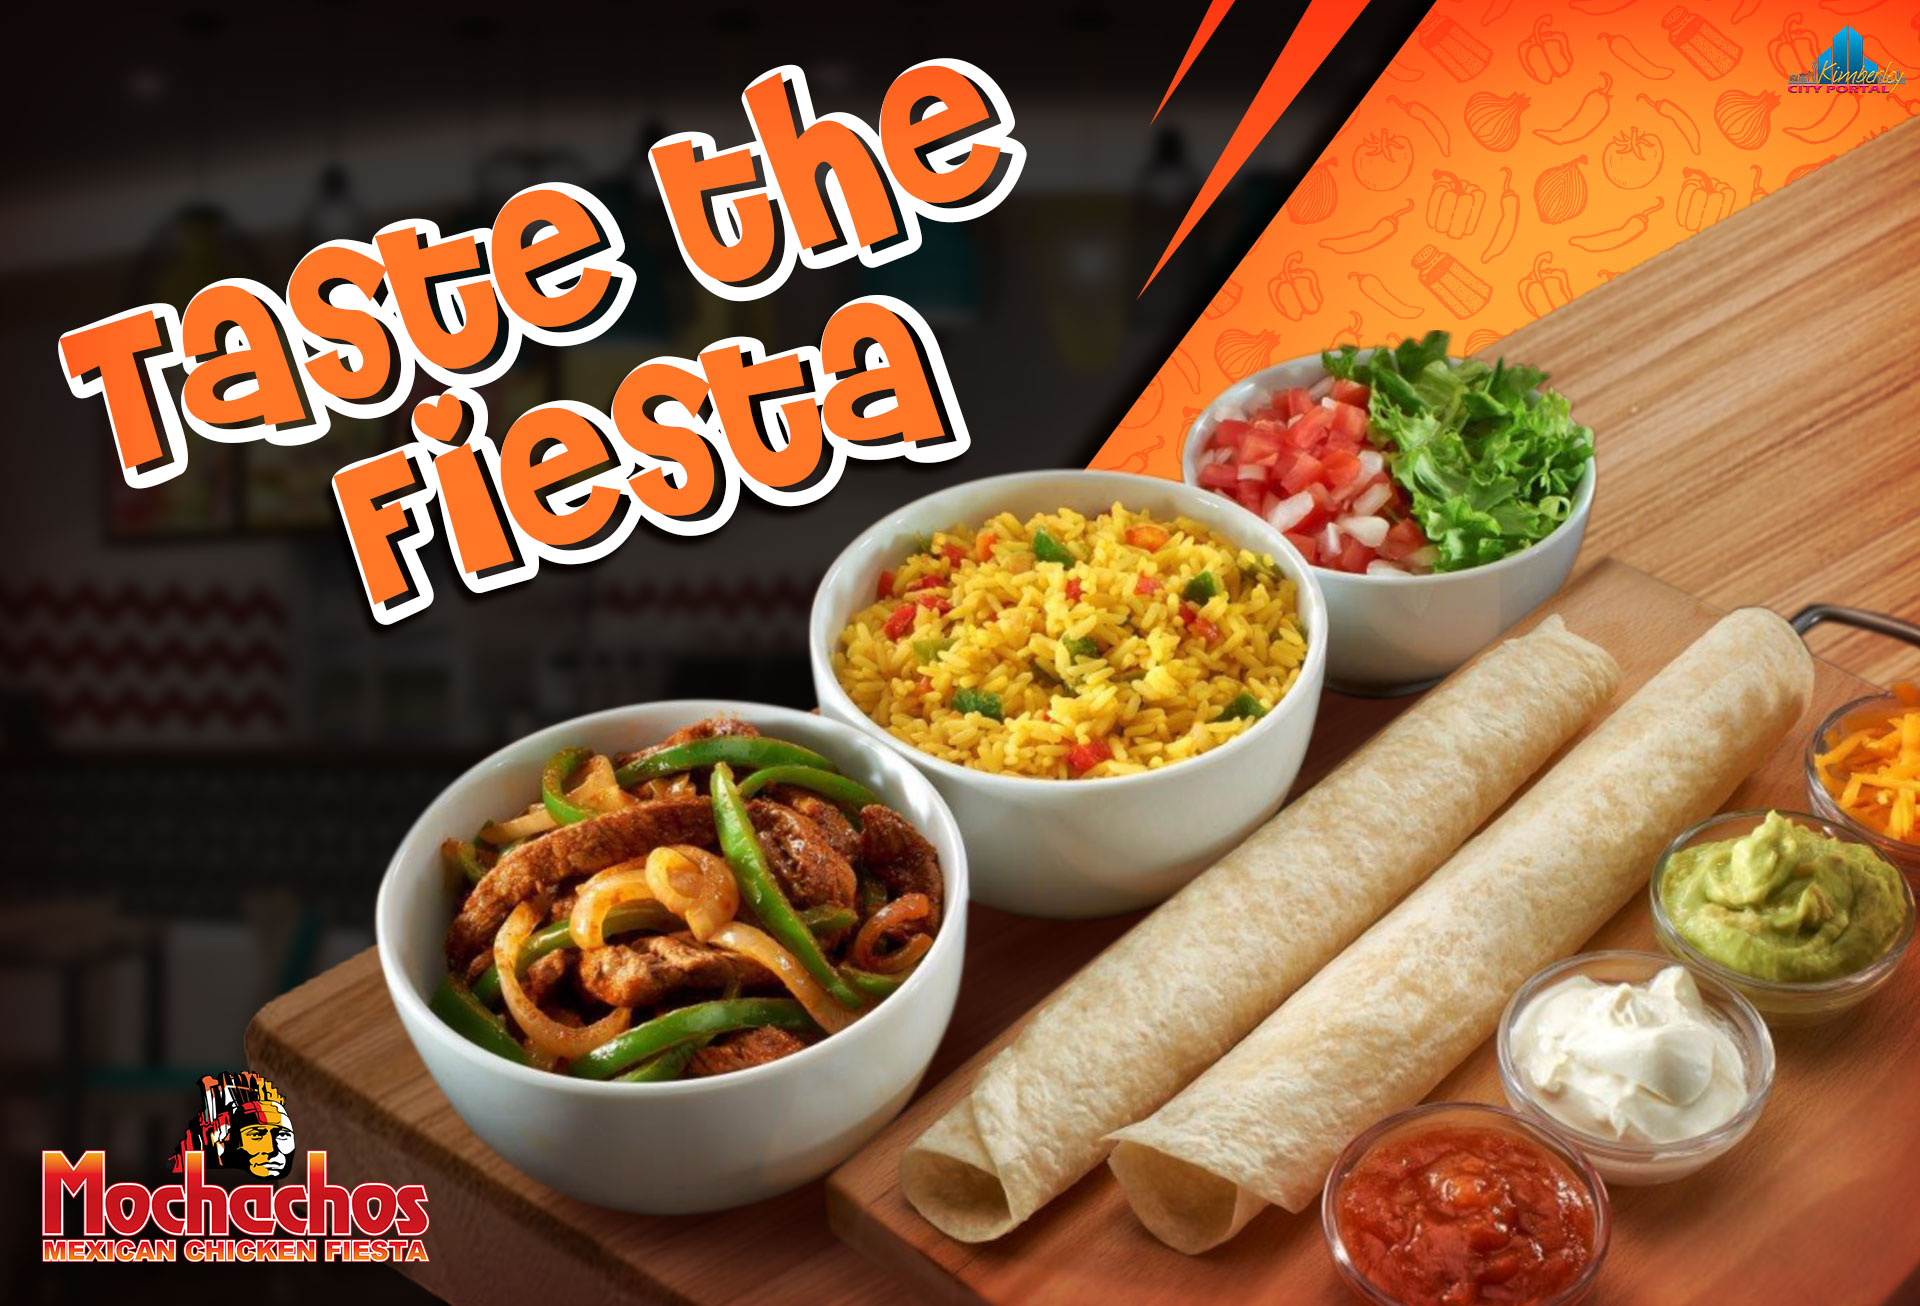 Mochachos North Cape Mall, Kimberley - Taste the fiesta